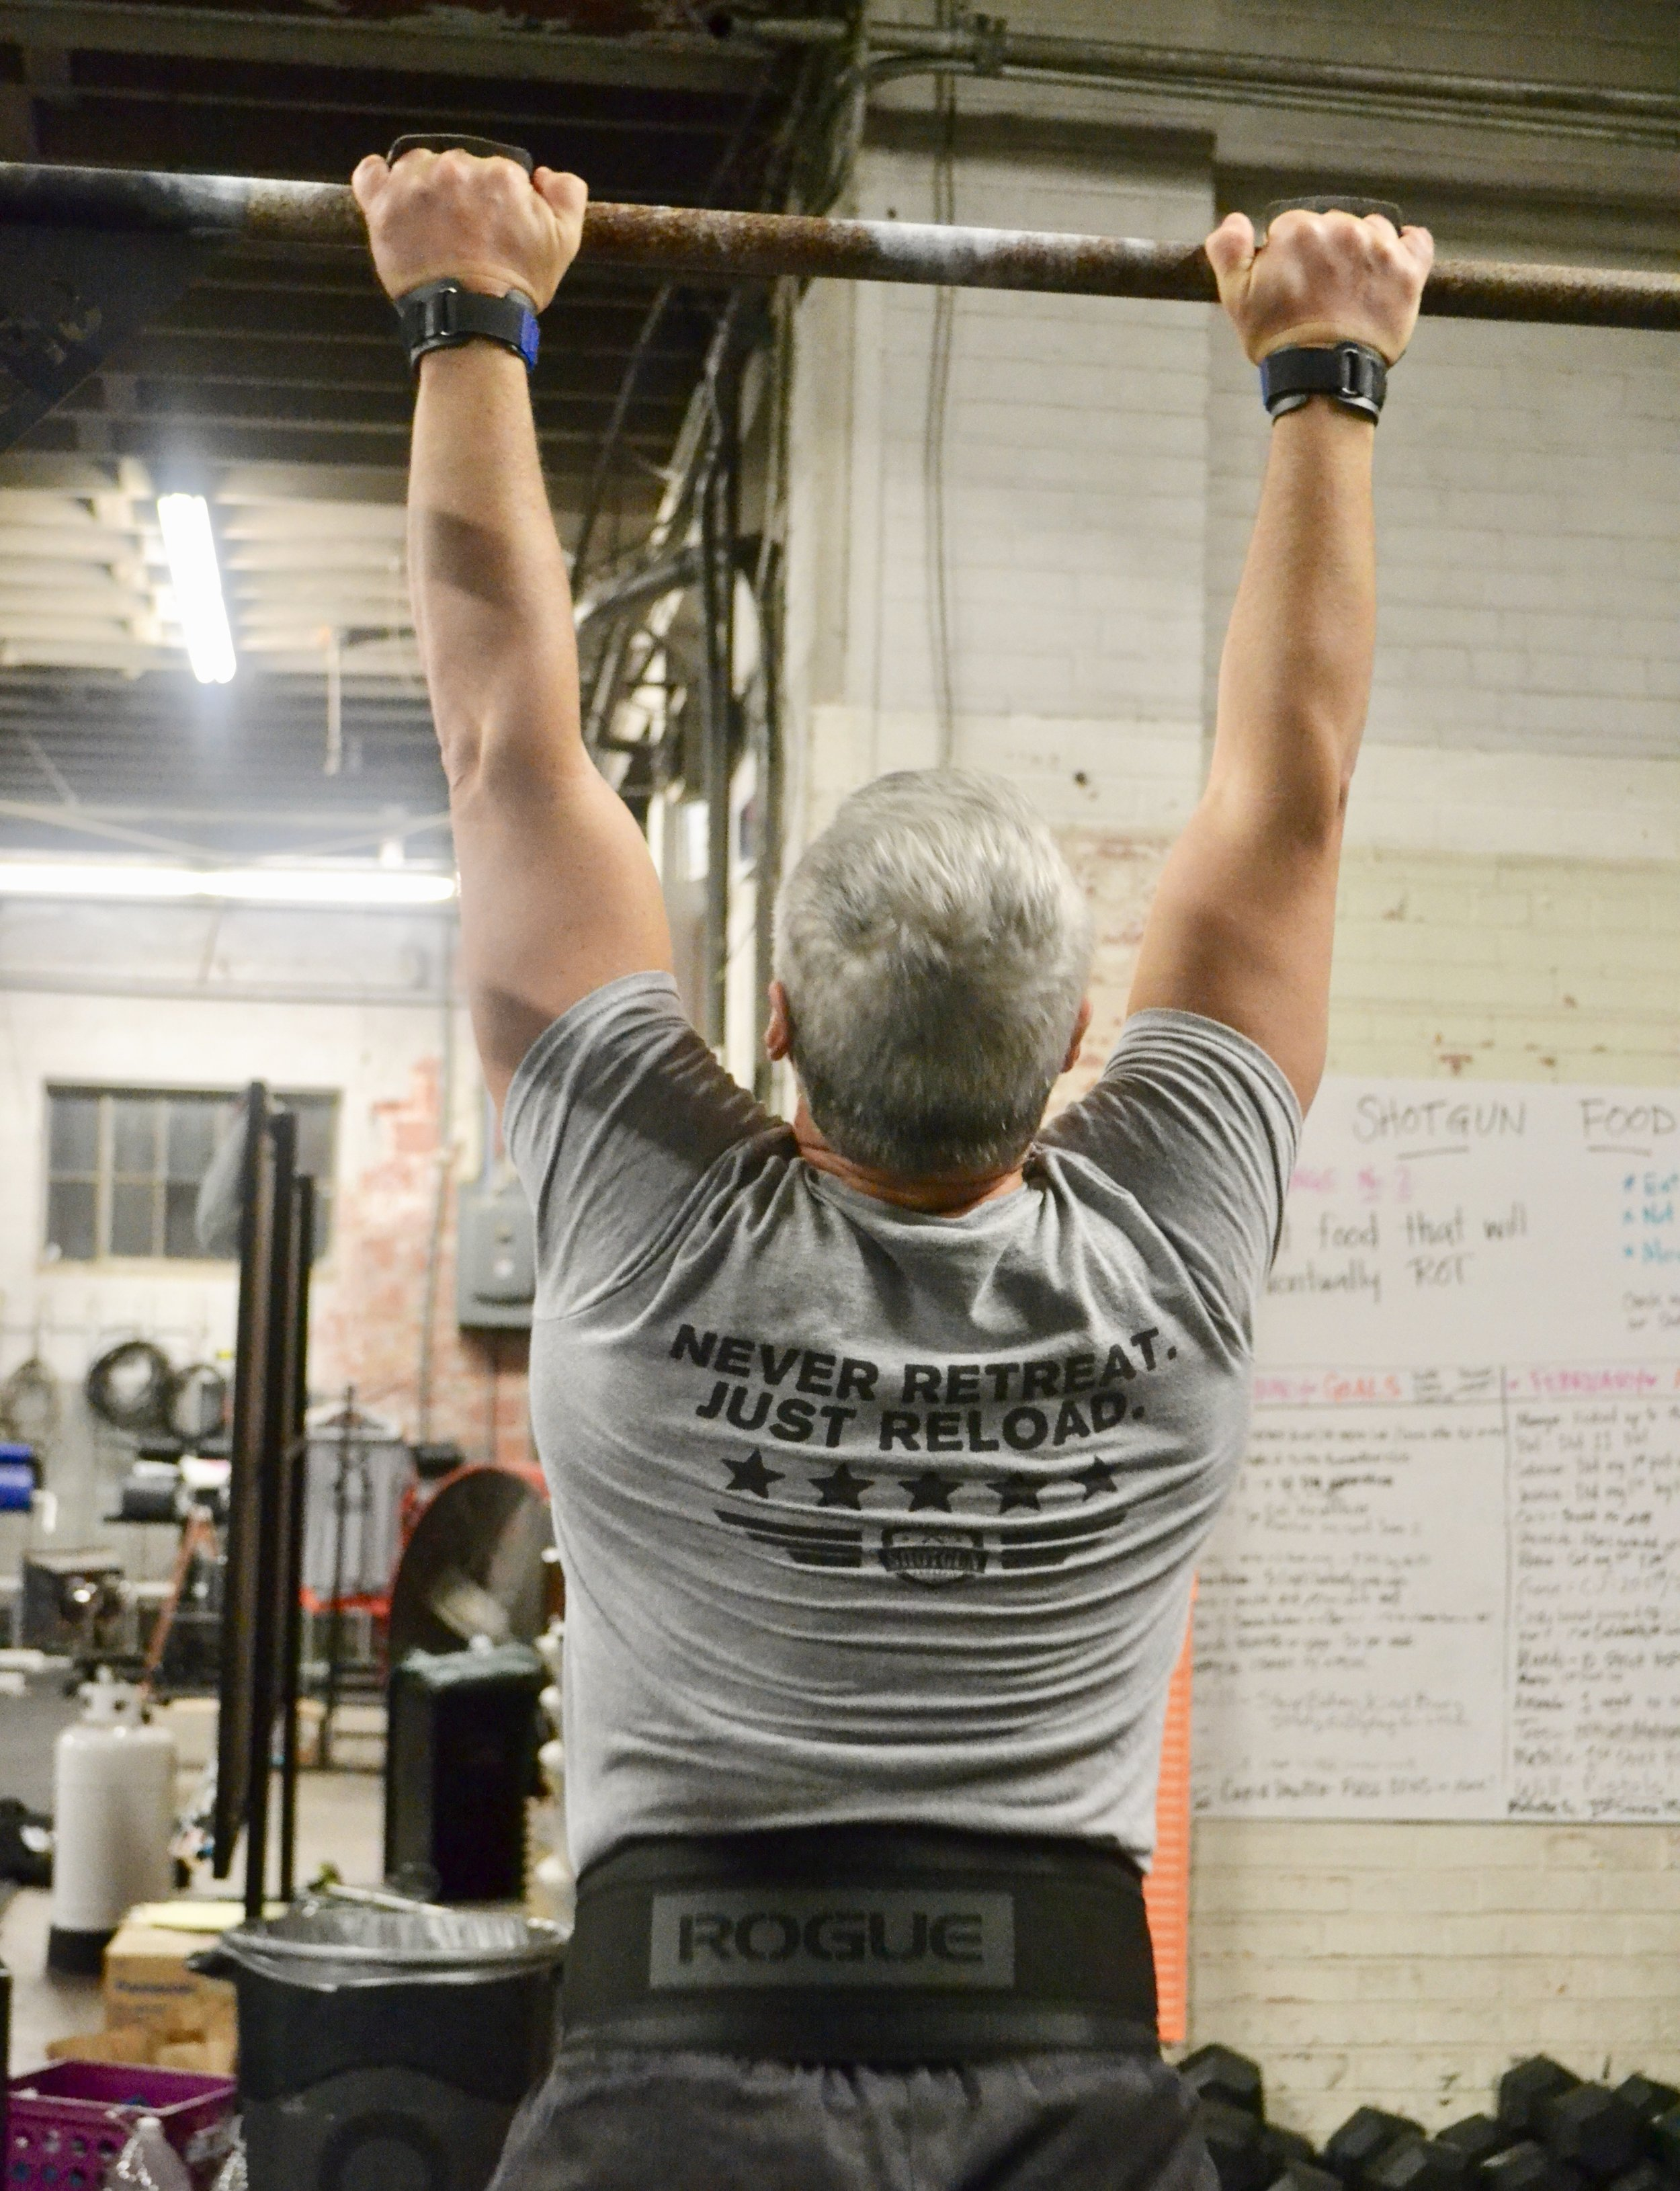 Tom N.  Skill: Muscle-Up and Handstand walk practice 6 min AMRAP: 1-4 Muscle Ups -then- 6 min : 30 sec. HS walk 30 rest.  *Scaled: Work on what you need to work on during this time. Bar MU, C2B, pull-ups, Ring rows. Kicking Up to a HS. Weight transfers in a HS.  WOD: EMOM 20 minutes of: 10 Burpees  Score: Slowest and fastest times. Rx: 10 burpees all 20 rounds.  Sc: Reduce reps as needed. You want to build in around 20-30 sec.or more of rest per minute.